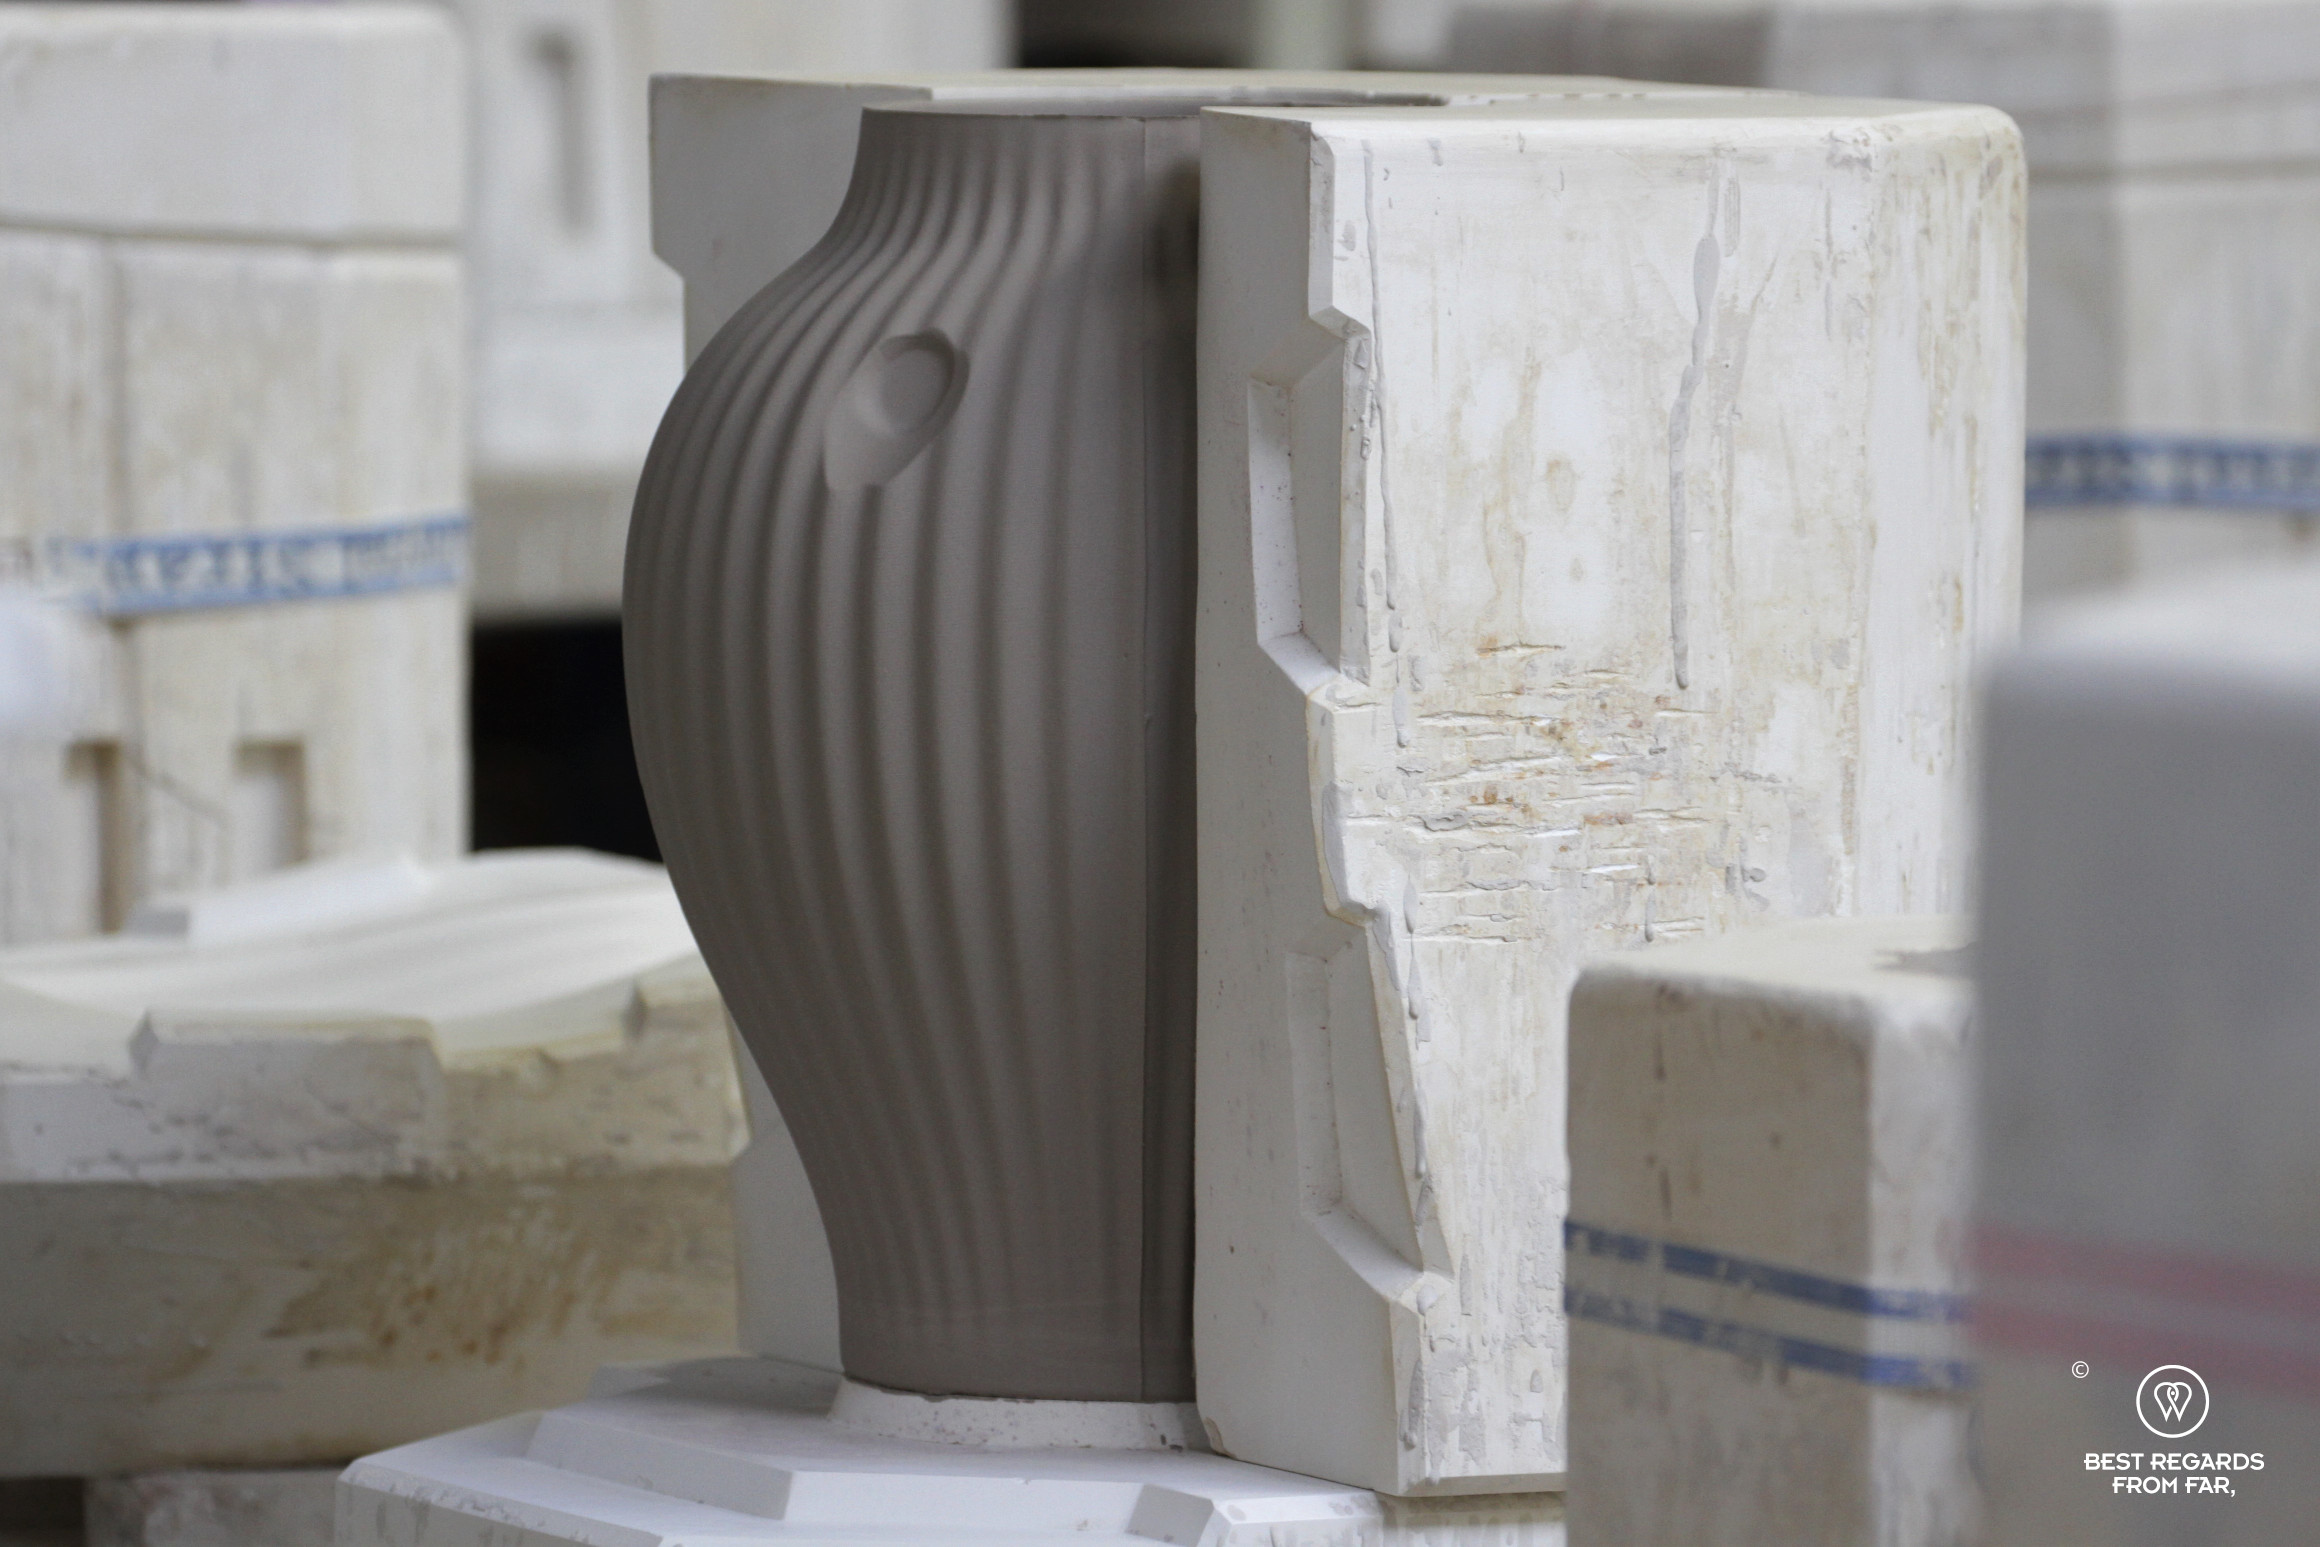 Vase in a mould, the Royal Delft factory, the Netherlands